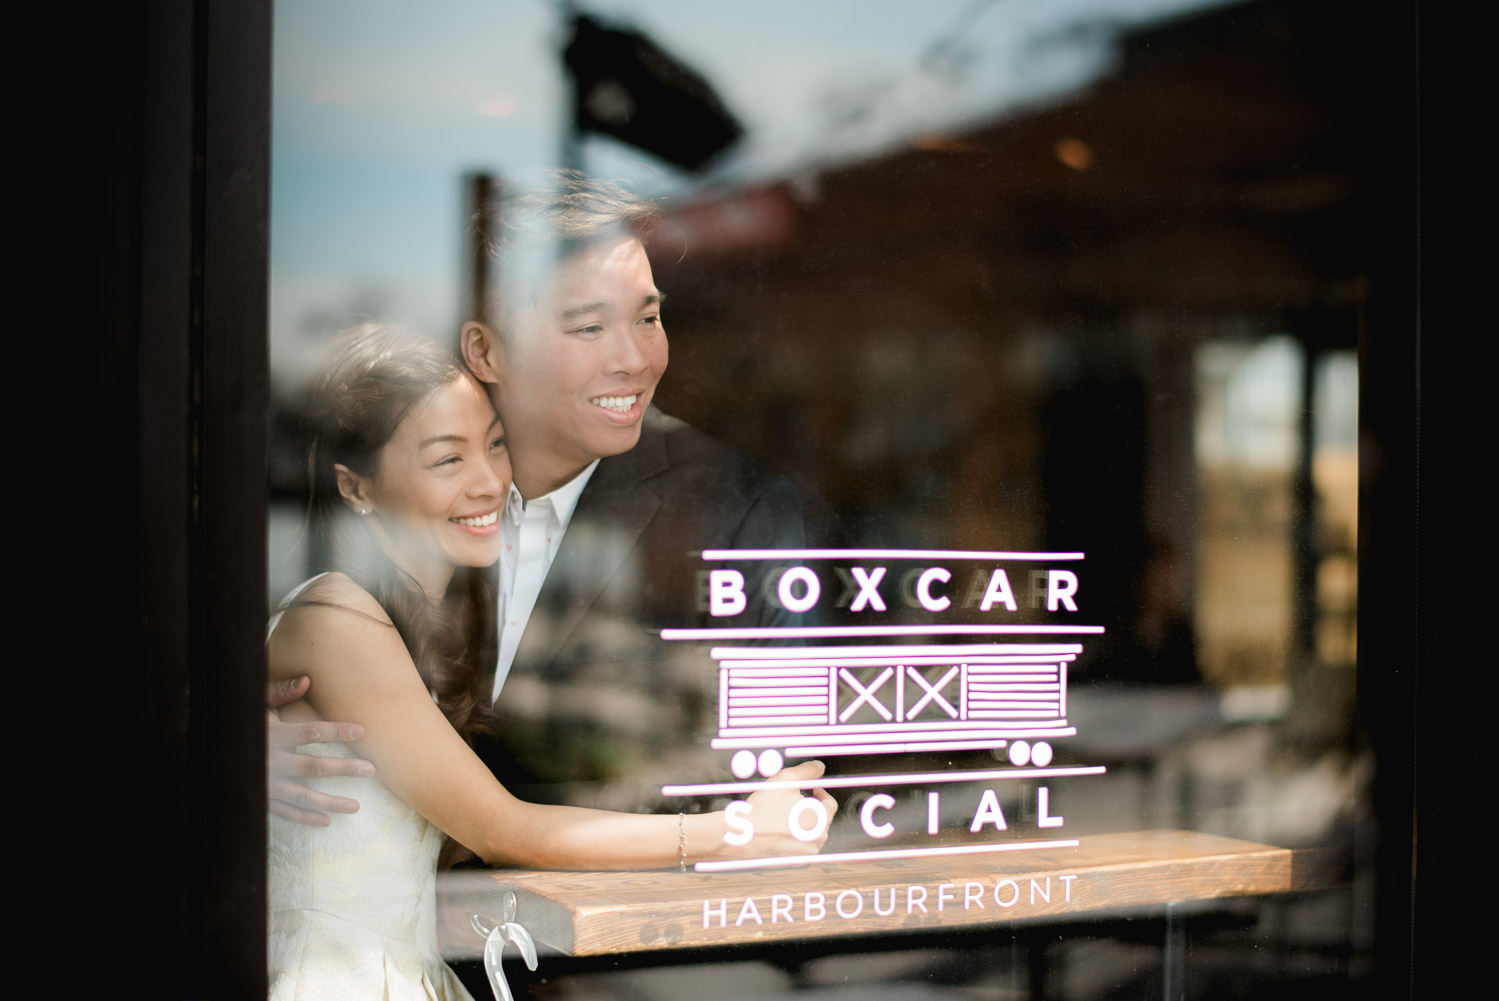 A photograph taken outside window of the couple of Boxcar Social in Toronto at Harbourfront